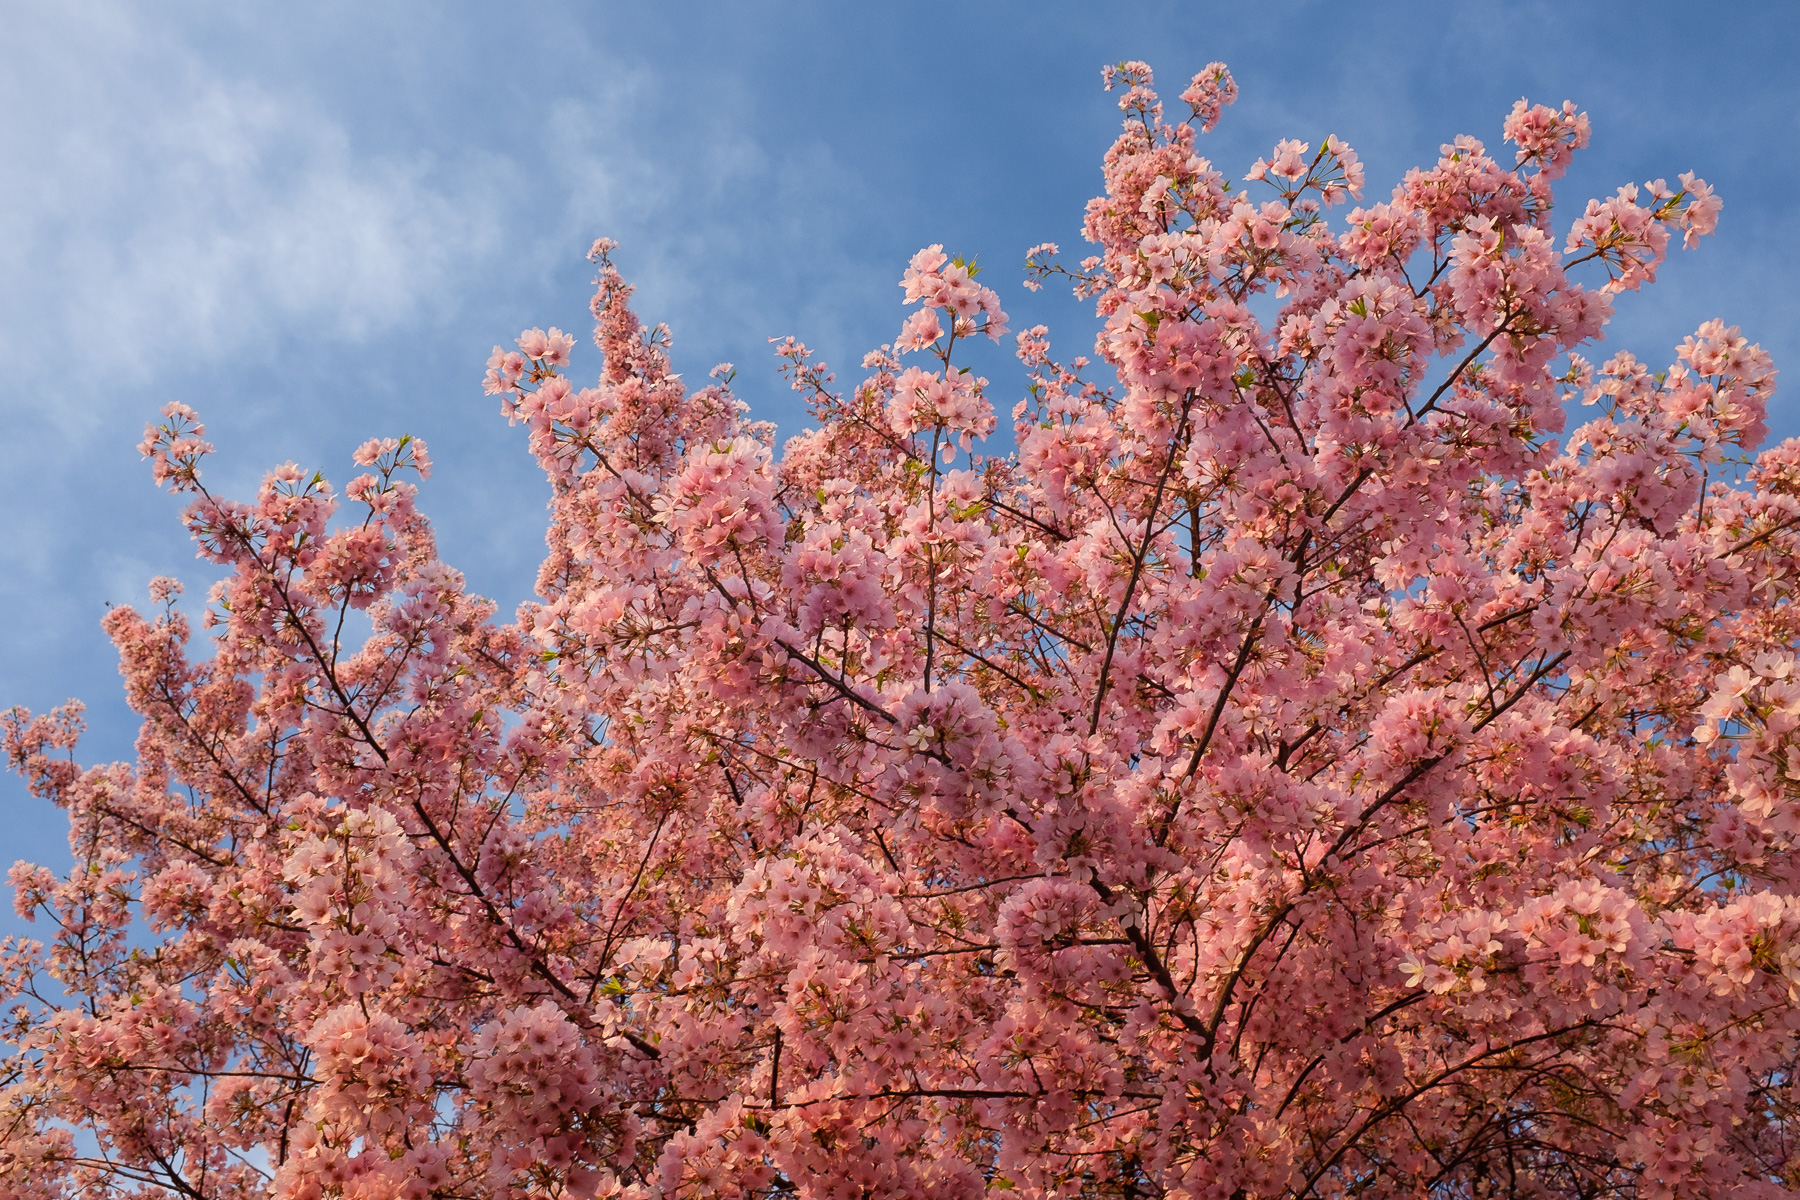 Incredible-Cherry-Blossoms-Peak-Bloom.jpg